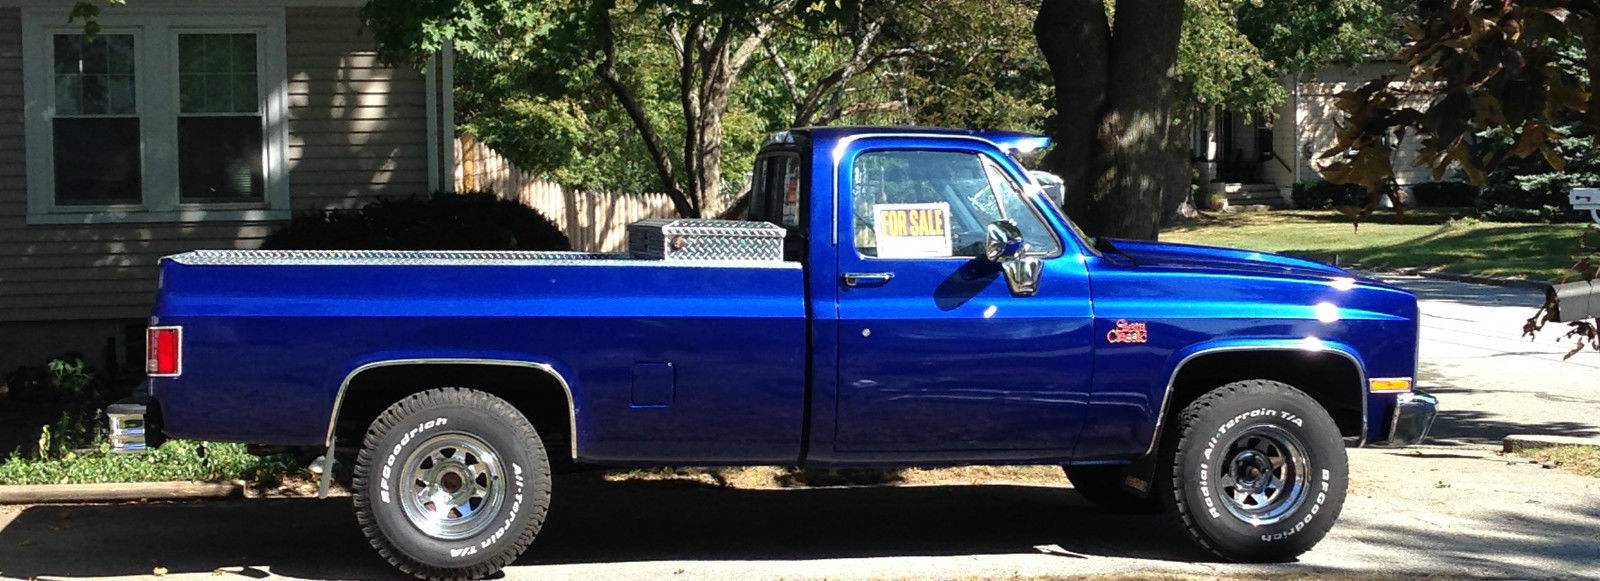 1985 Gmc Sierra Classic Rust Free With A 1987 Chevy 305 Ho